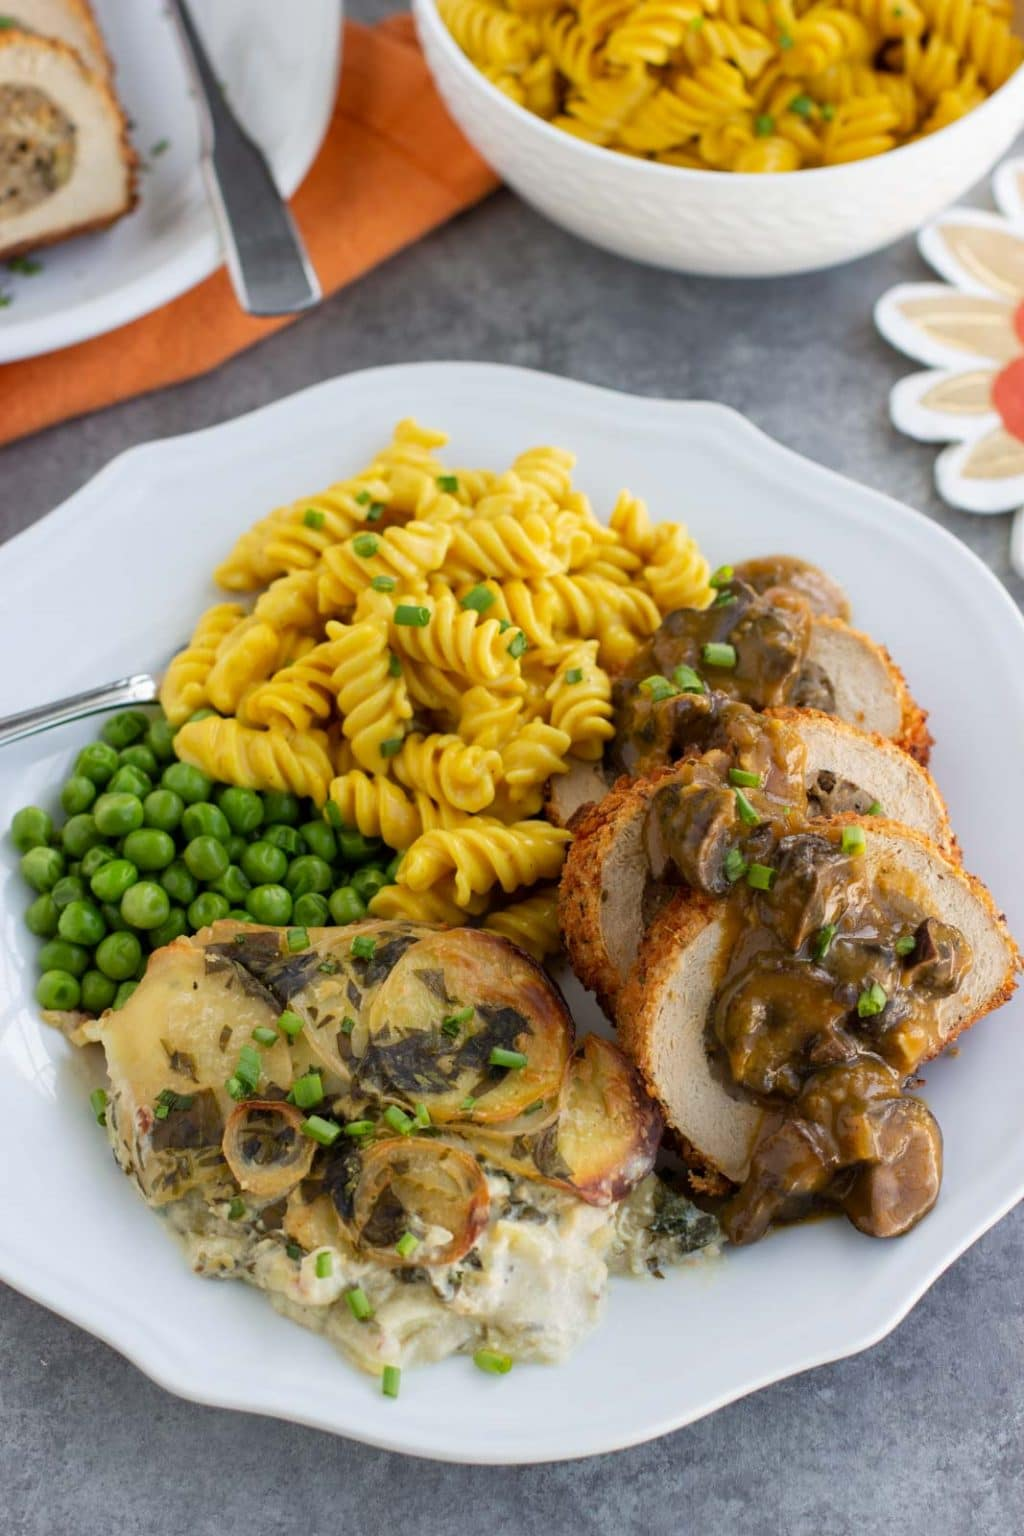 A white plate filled with vegan scalloped potatoes, macaroni and cheese, vegan turkey, and green peas on a gray background.